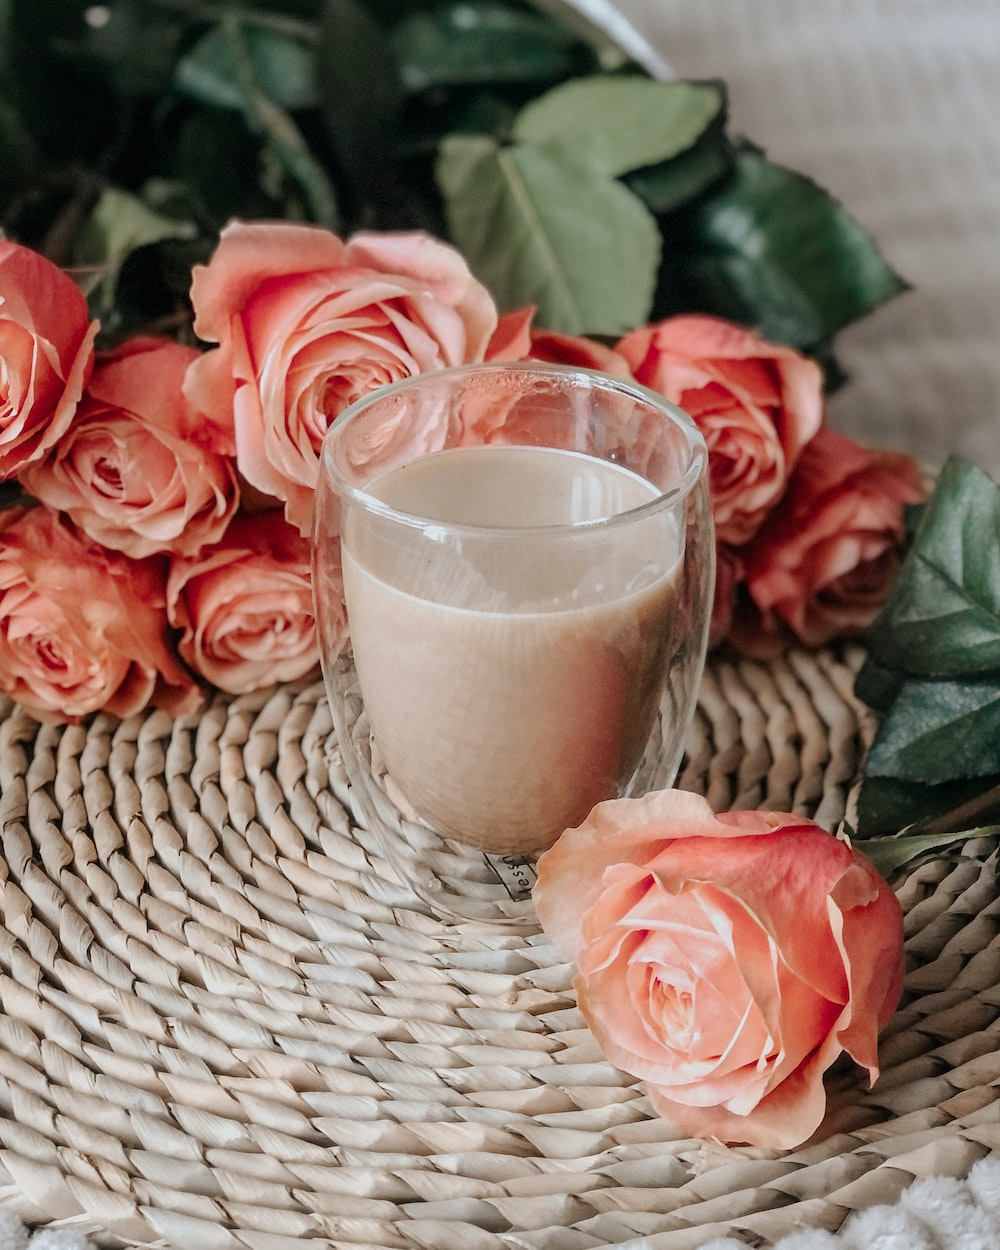 pink roses beside clear drinking glass on brown woven round table